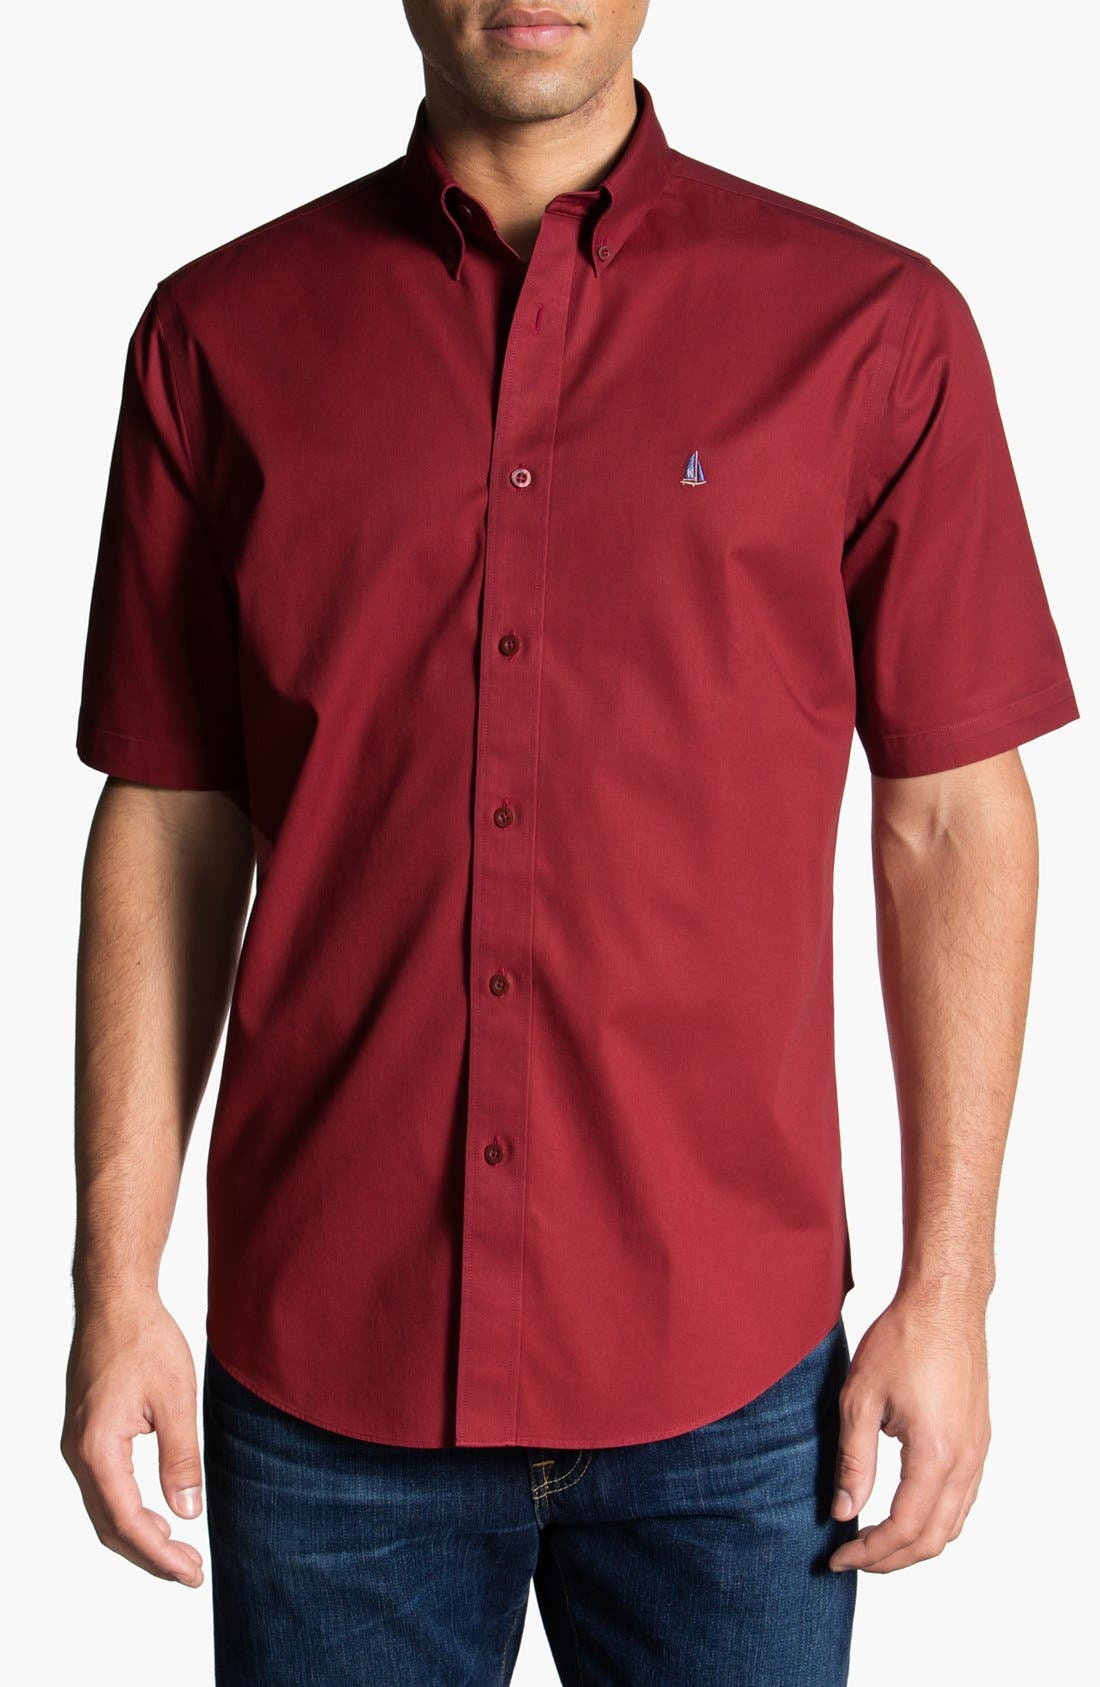 Alternate Image 1 Selected - Nordstrom Smartcare™ Traditional Fit Short Sleeve Twill Boat Shirt